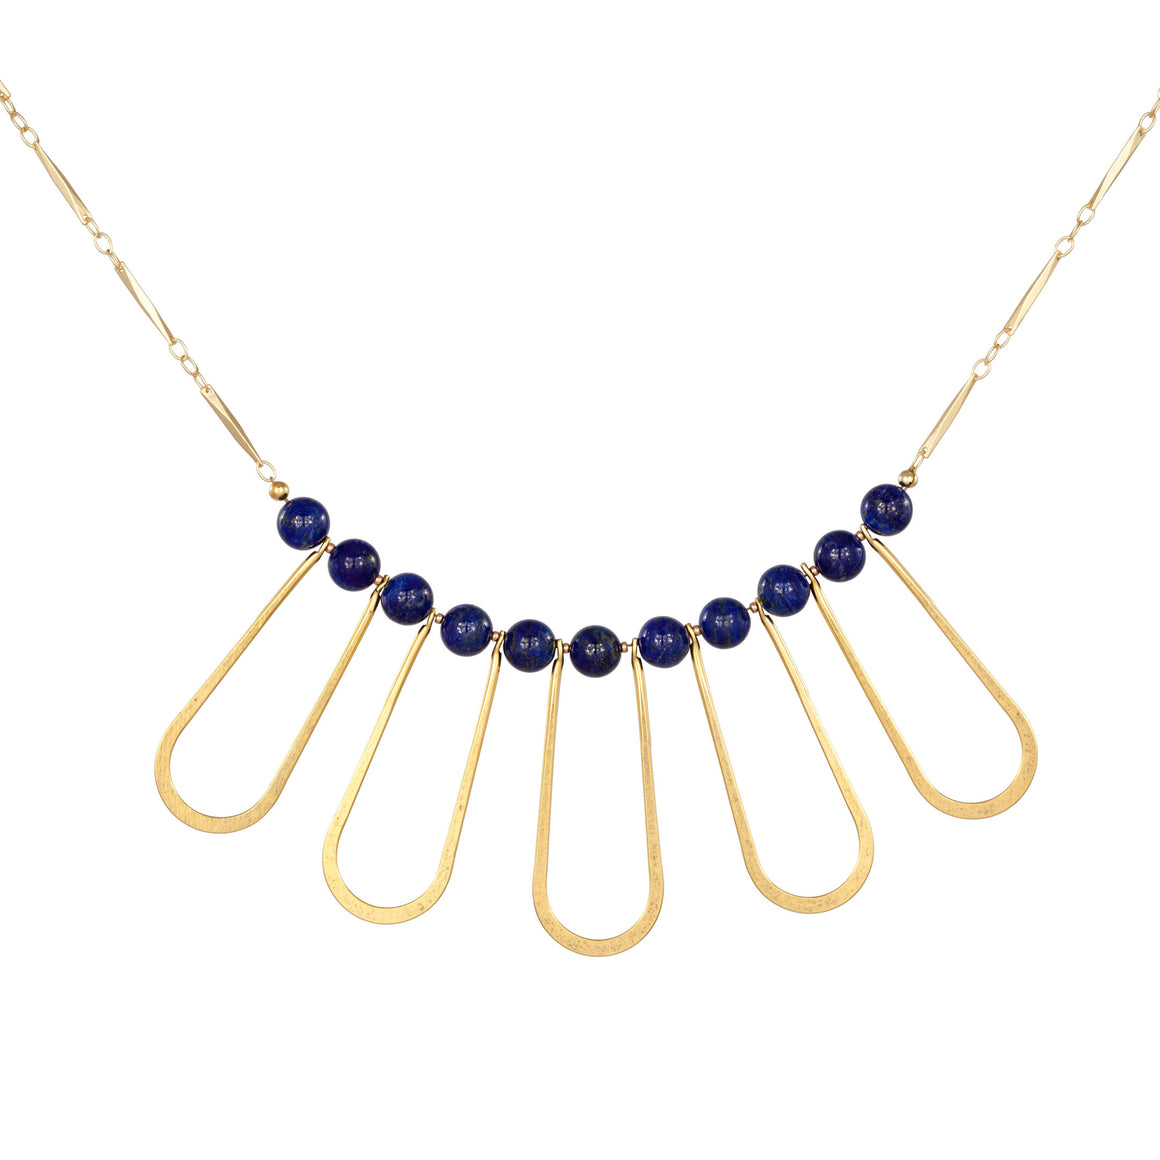 OVAL DROP NECKLACE